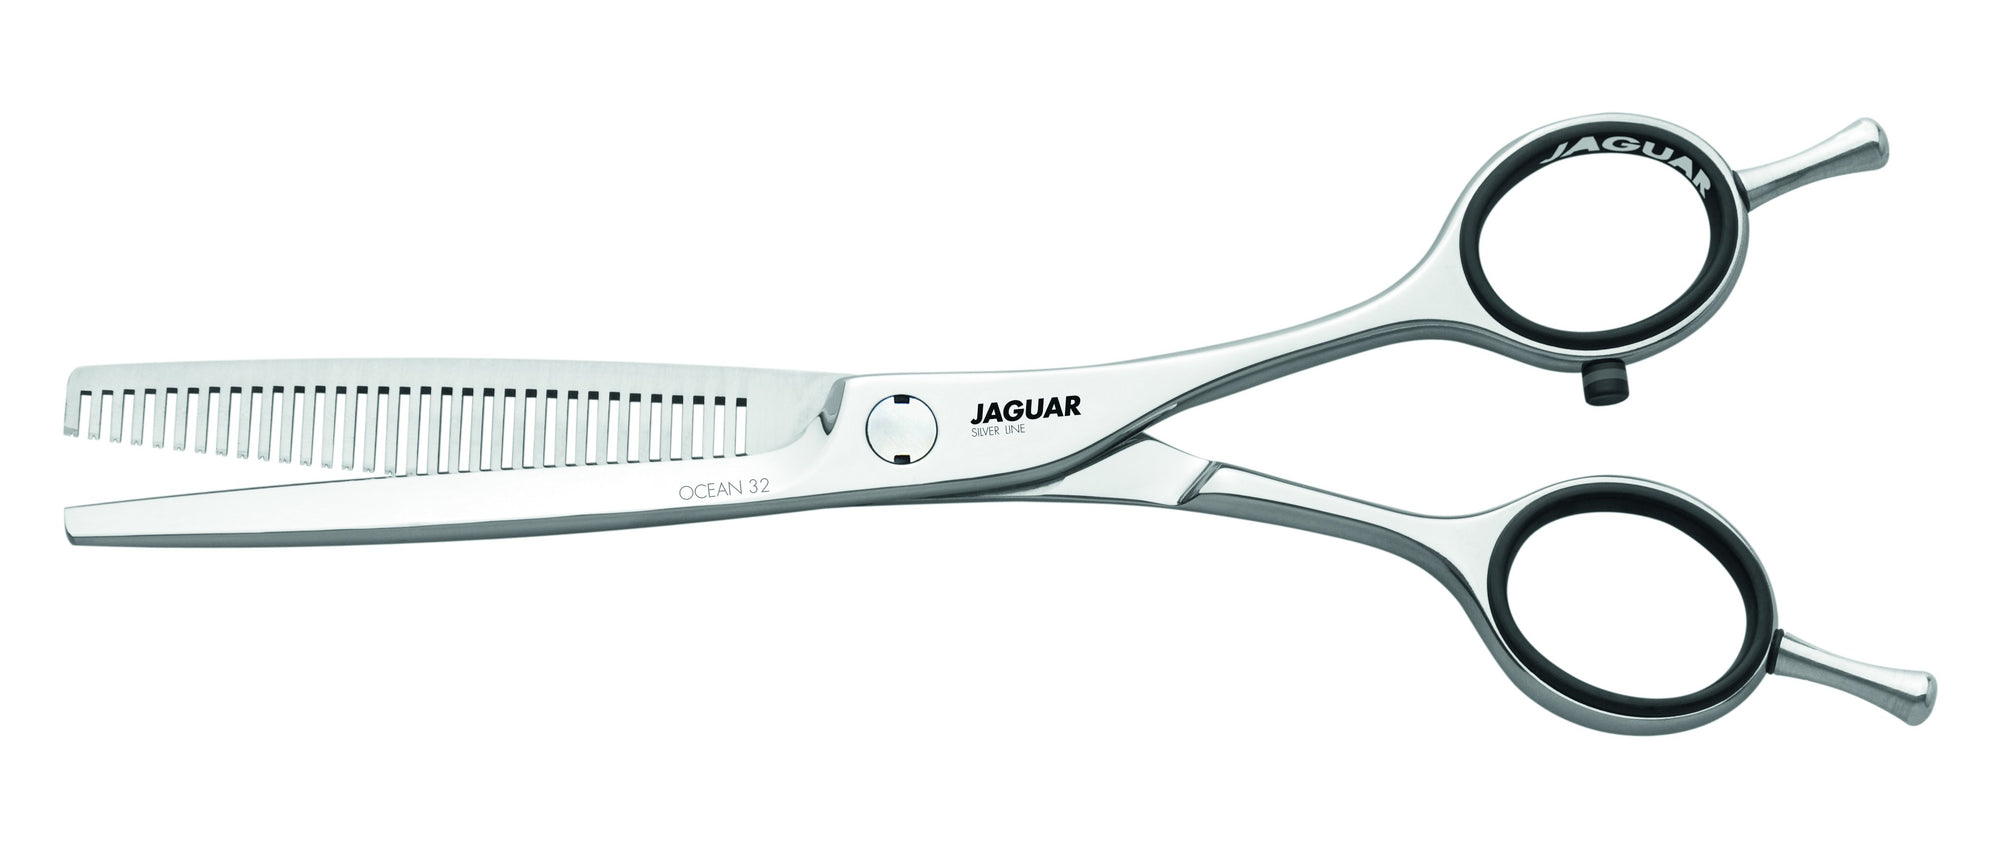 Jaguar Ocean 6 inch Thinner (4396645351507)